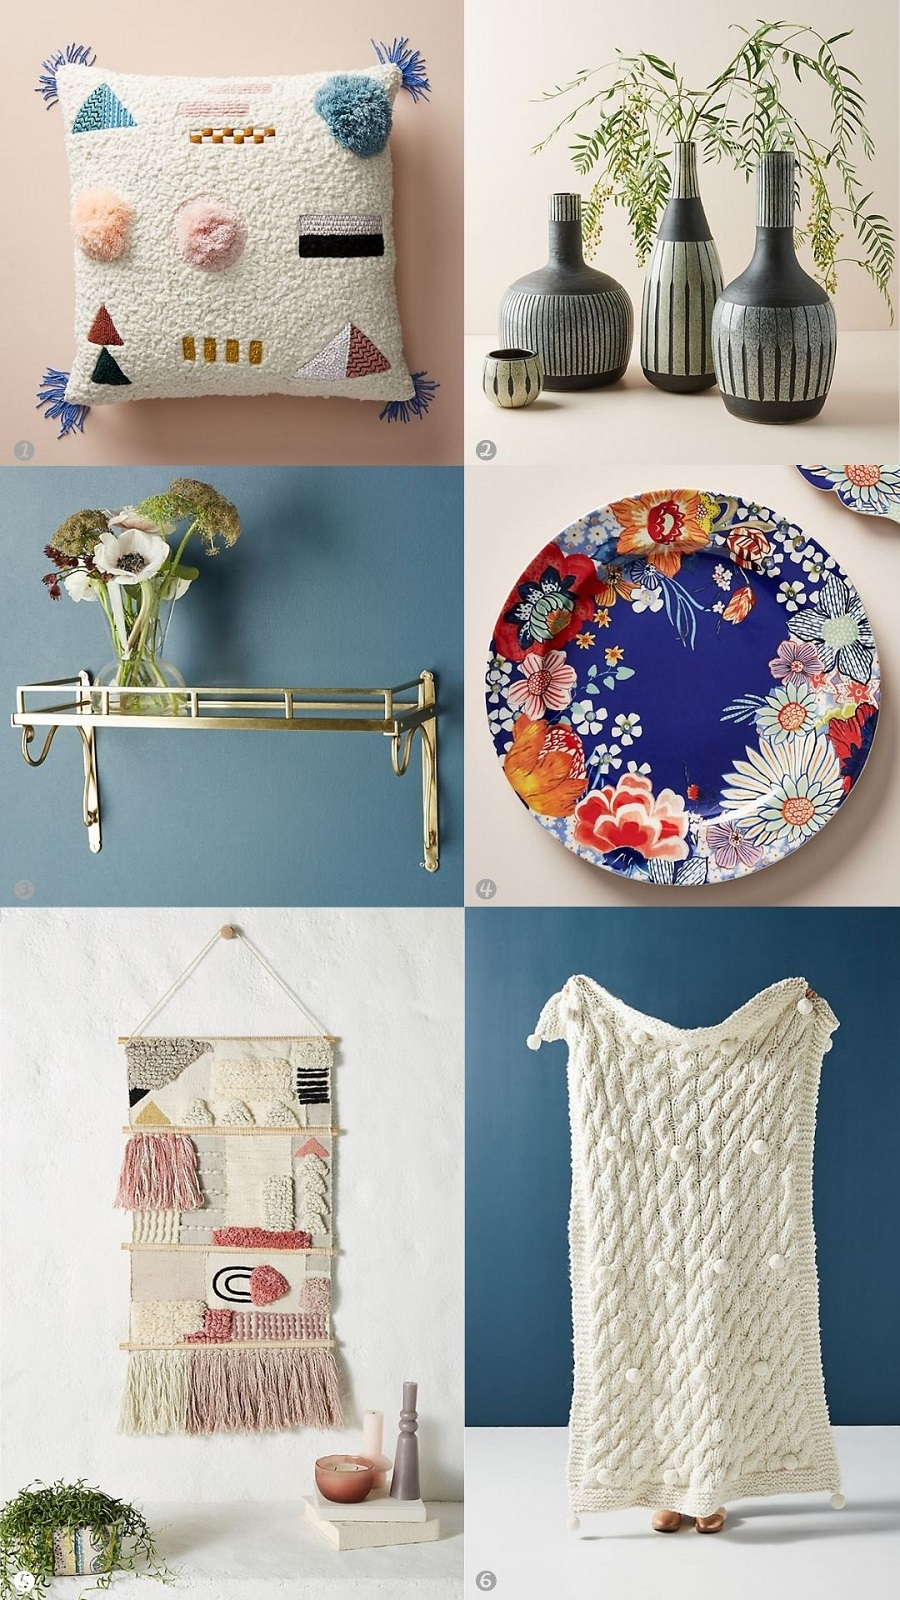 Homeware Bargains in the Summer Sales Part 1